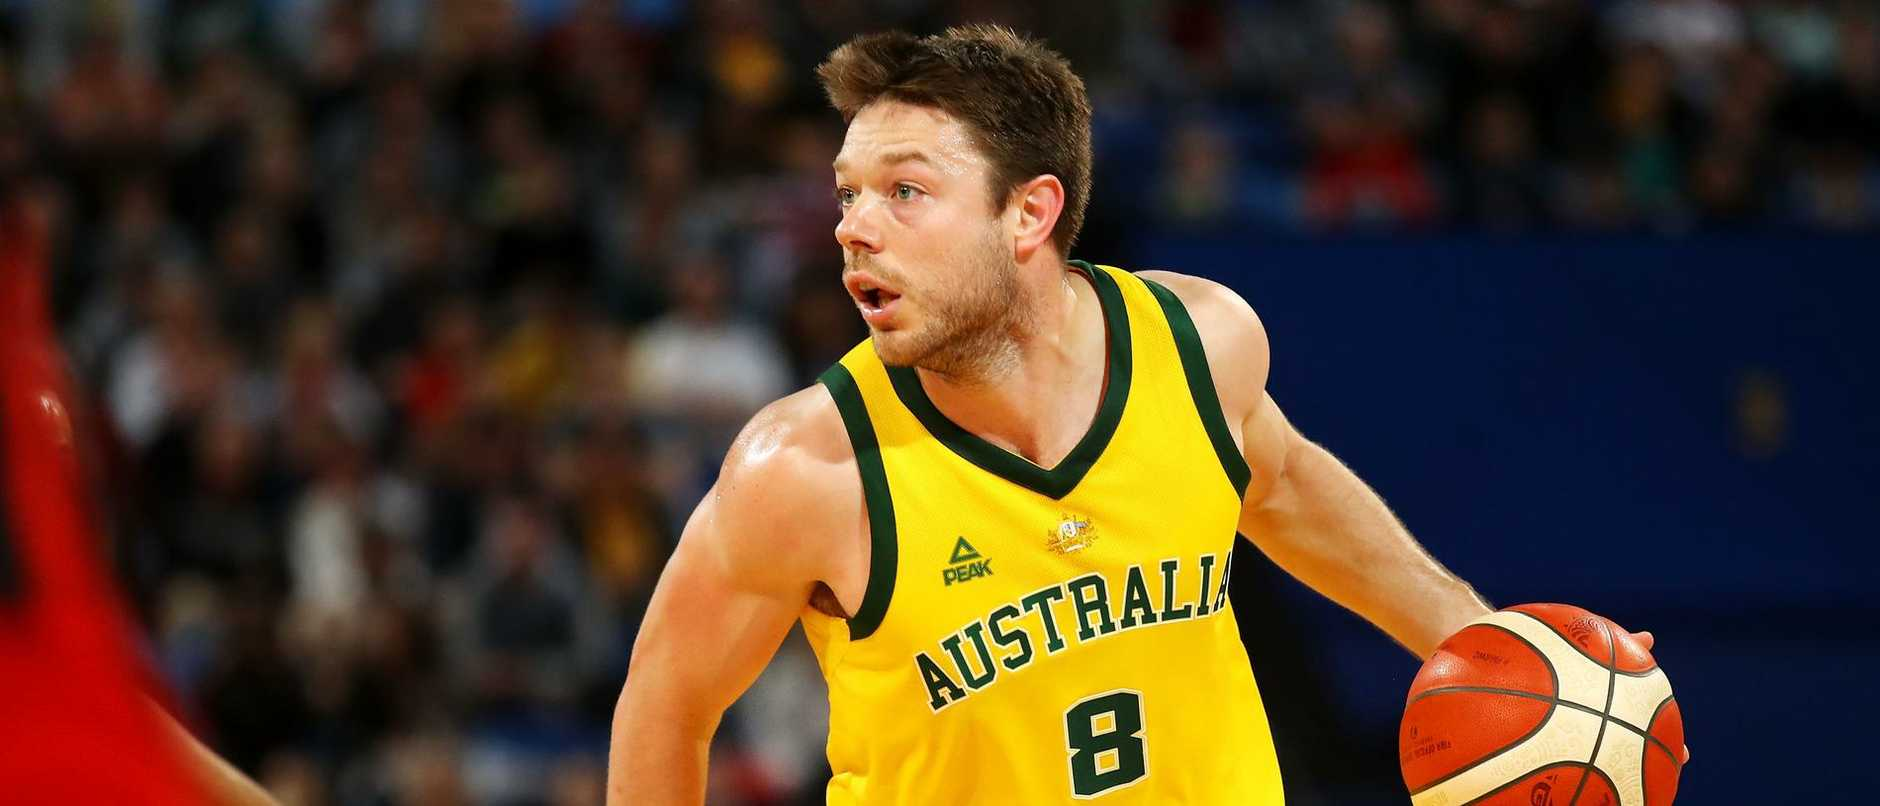 A report from America claims NBA and Australian Boomers star Matthew Dellavedova could be forced into an early retirement.